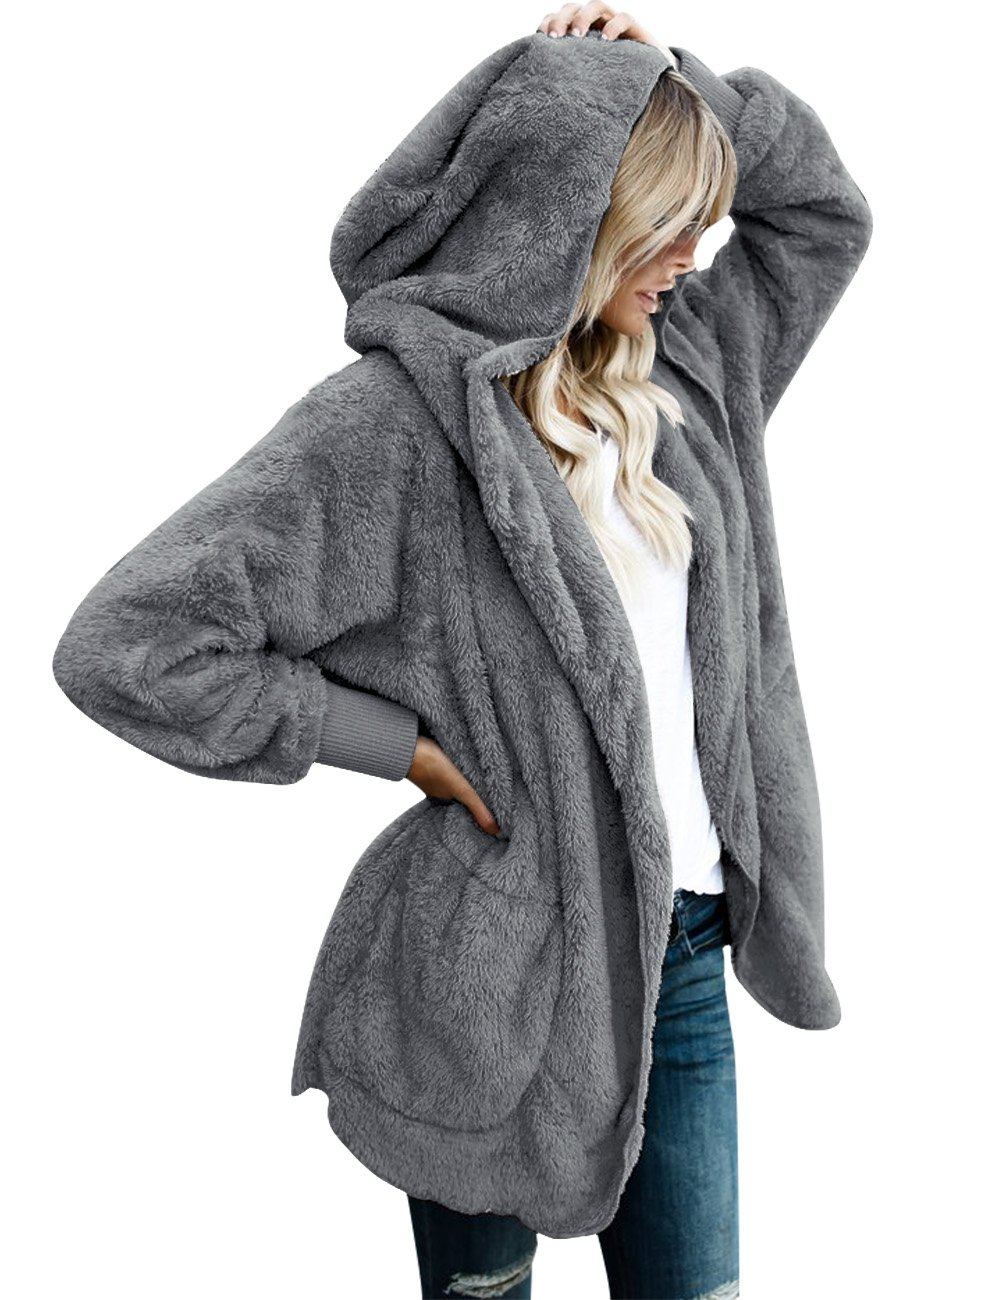 LookbookStore Women's Oversized Open Front Hooded Draped Pocket Cardigan Coat Dark Grey Size S (Fit US 4 - US 6)